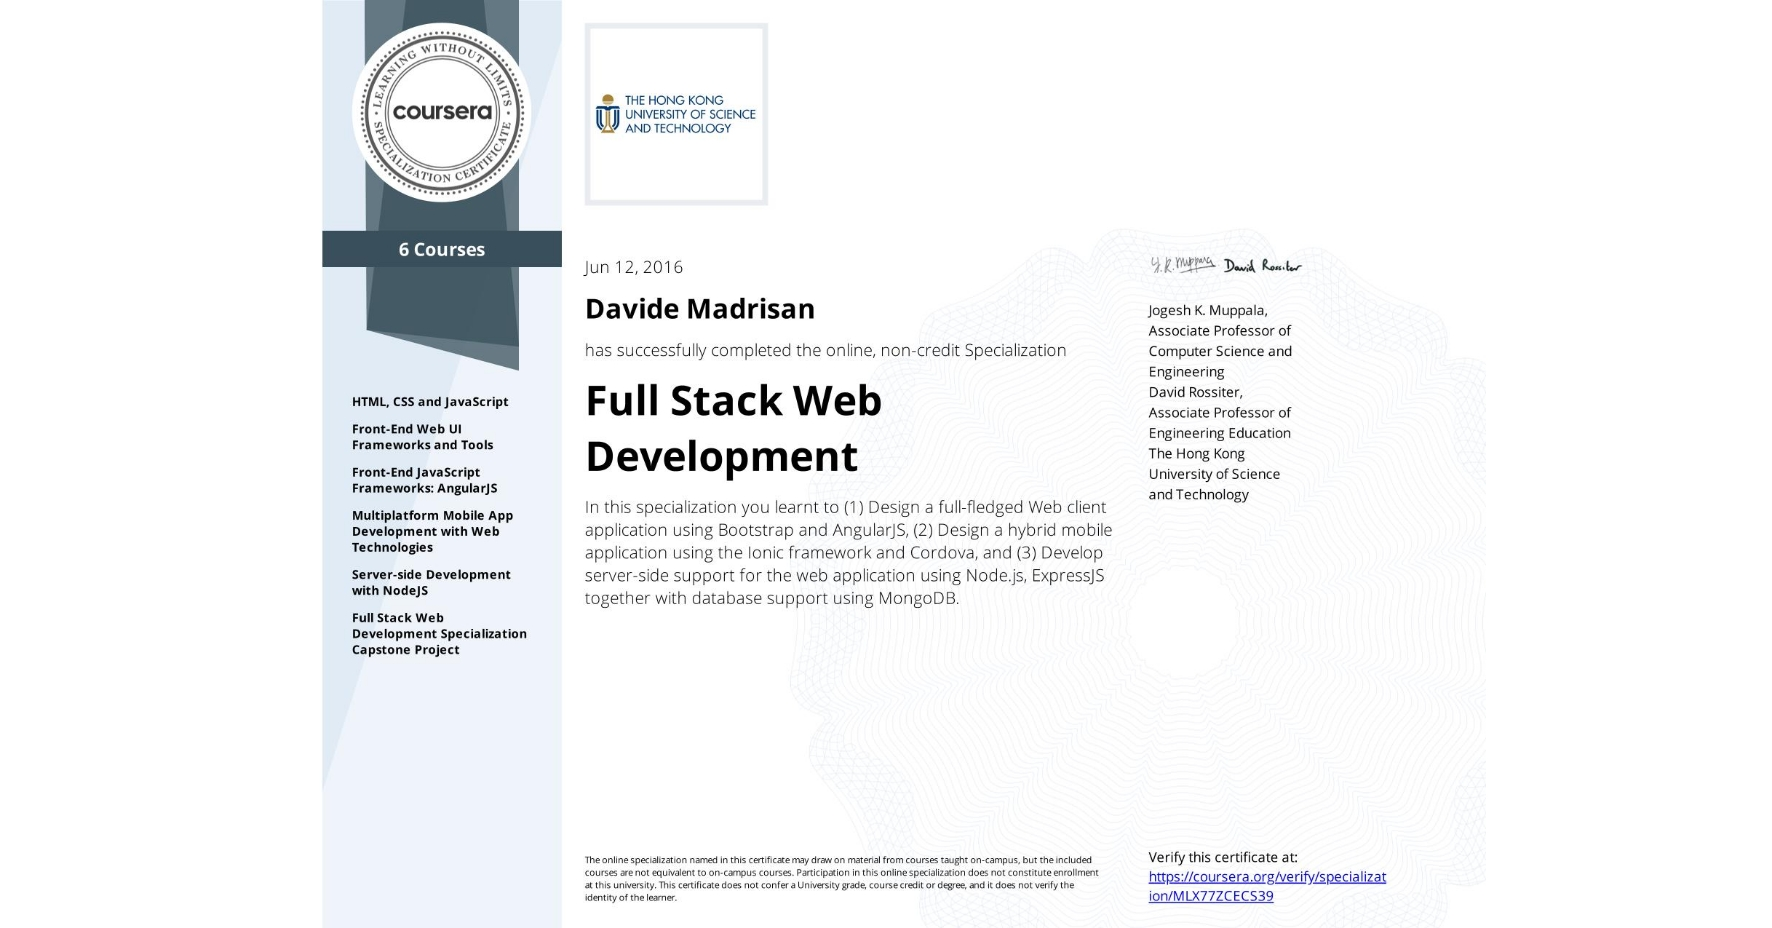 View certificate for Davide Madrisan, Full Stack Web Development, offered through Coursera. In this specialization you learnt to (1) Design a full-fledged Web client application using Bootstrap and AngularJS, (2) Design a hybrid mobile application using the Ionic framework and Cordova, and (3) Develop server-side support for the web application using Node.js, ExpressJS together with database support using MongoDB.